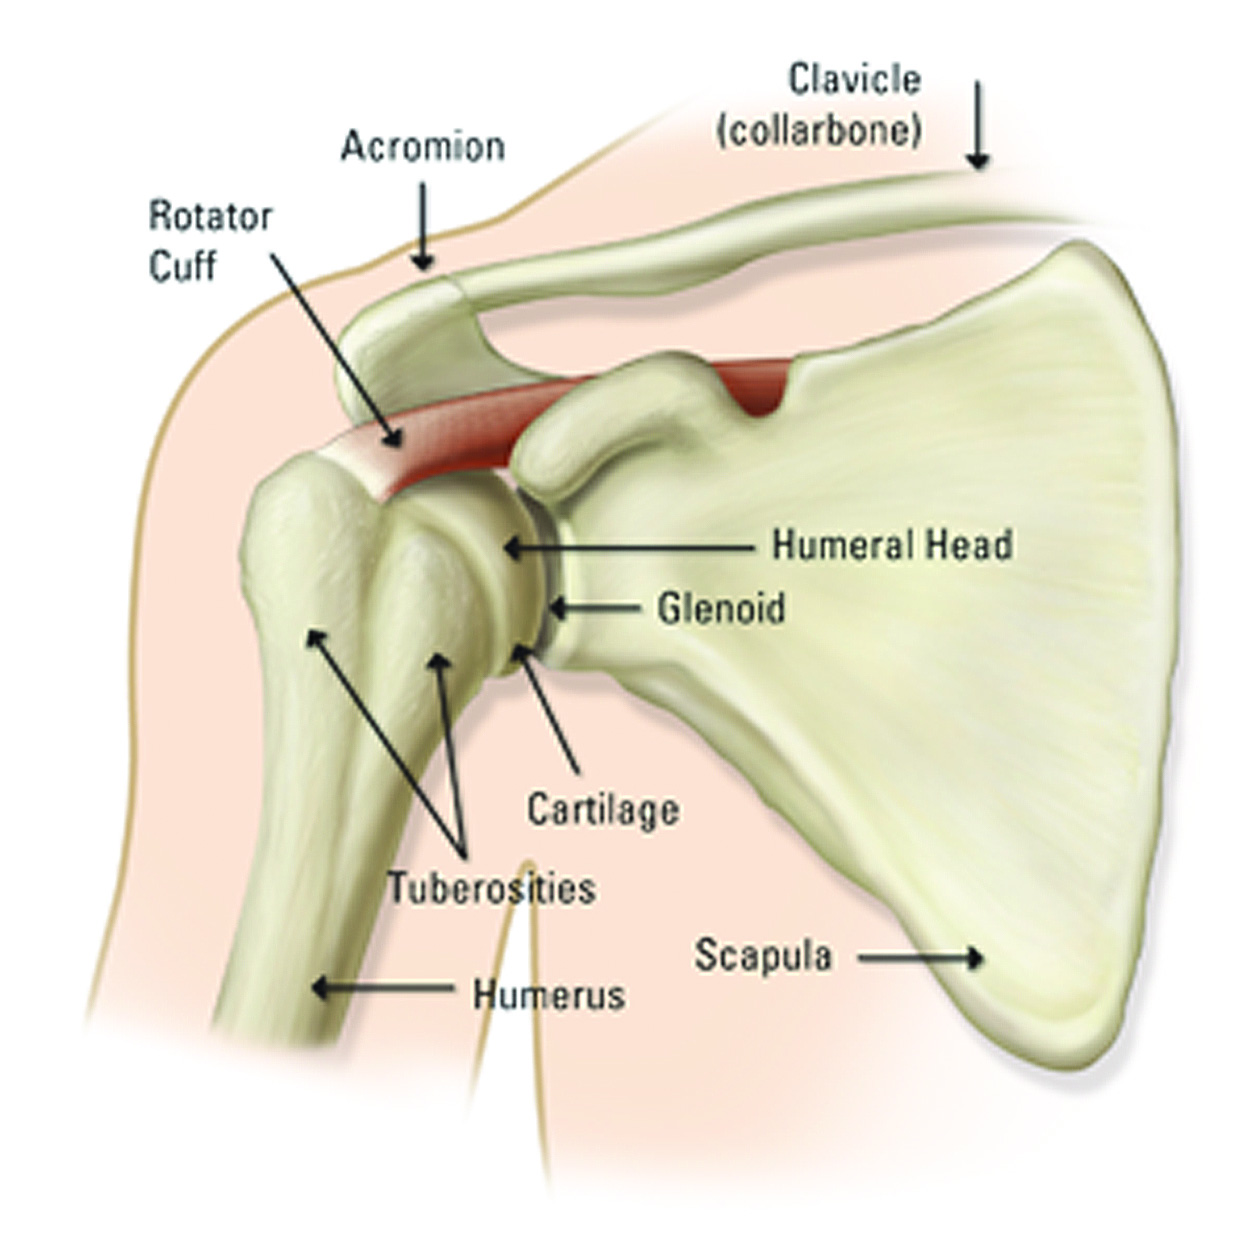 Torn Rotator Cuff Symptoms and the Treatment